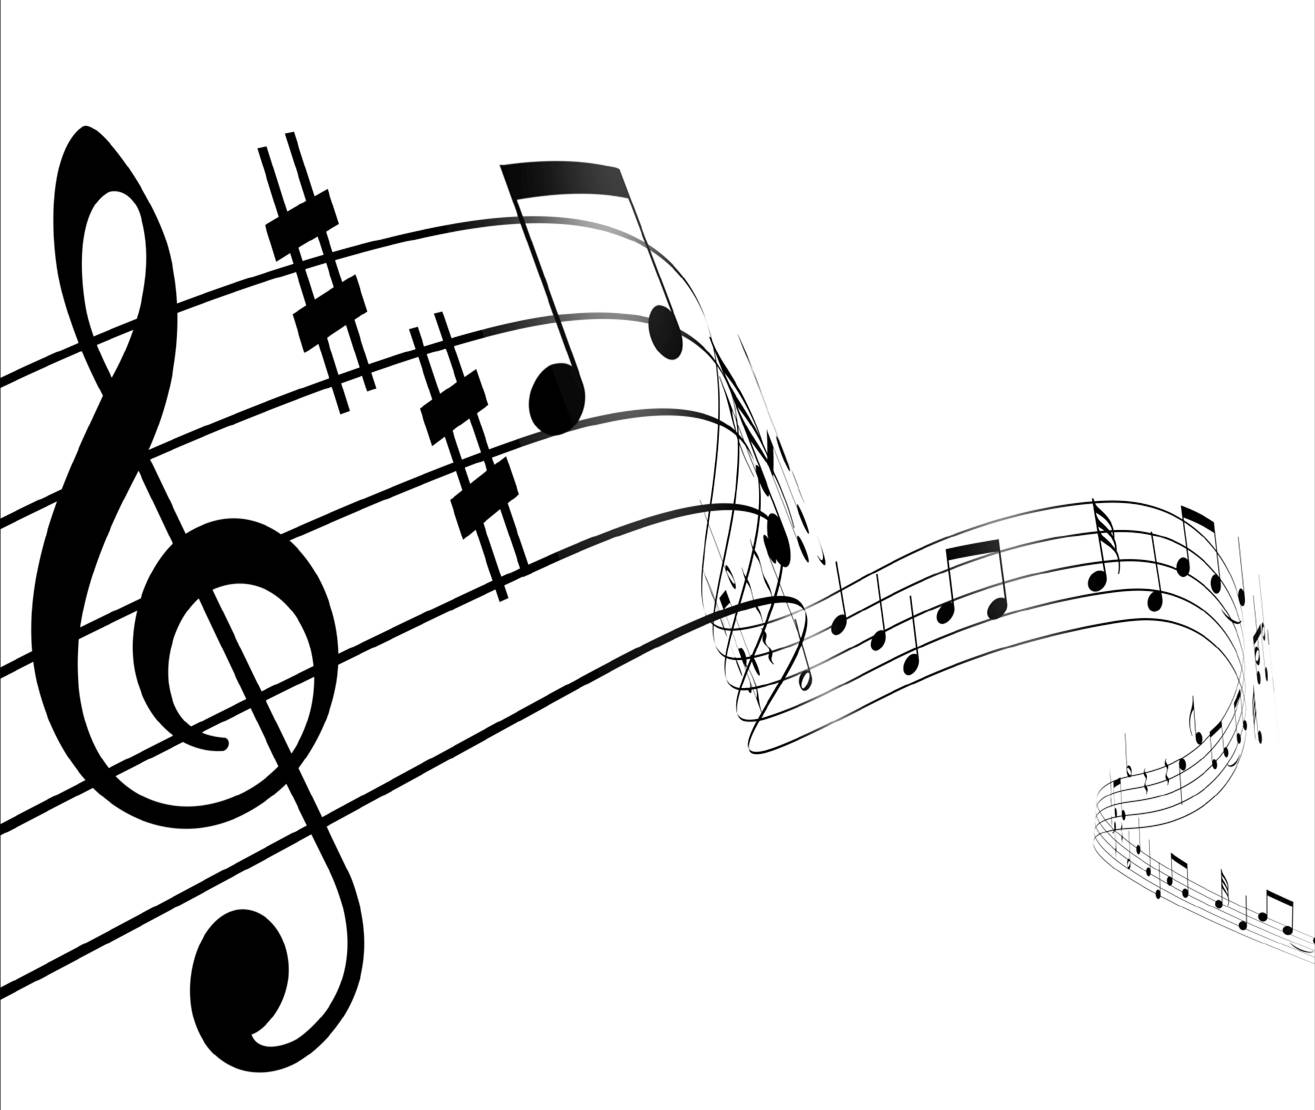 Curved clipart music staff. Wavy group image gallery